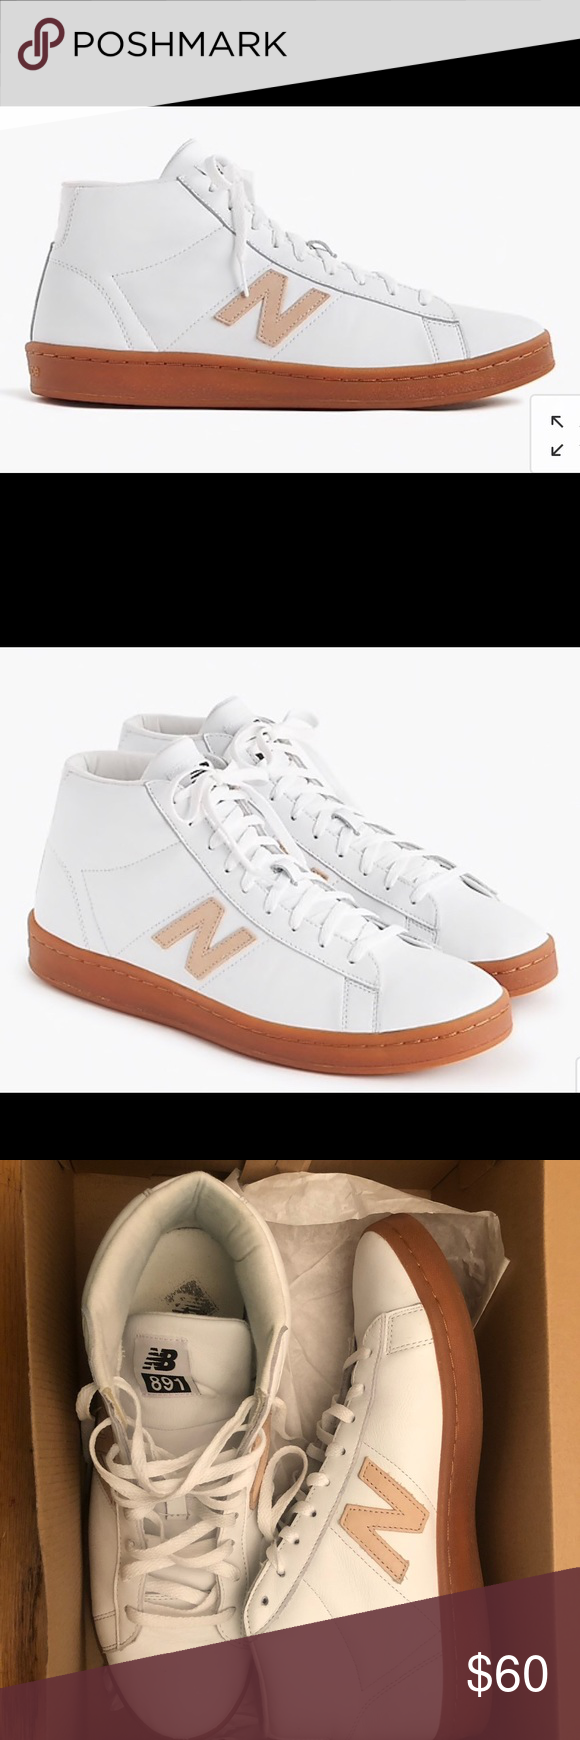 ffeb70a3cb7c New Balance for JCrew 891 leather hightop sneakers New Balance® for J.Crew  891 leather high-top sneakers in white. Sz 10.5. Worn 2 times. Like brand  new.